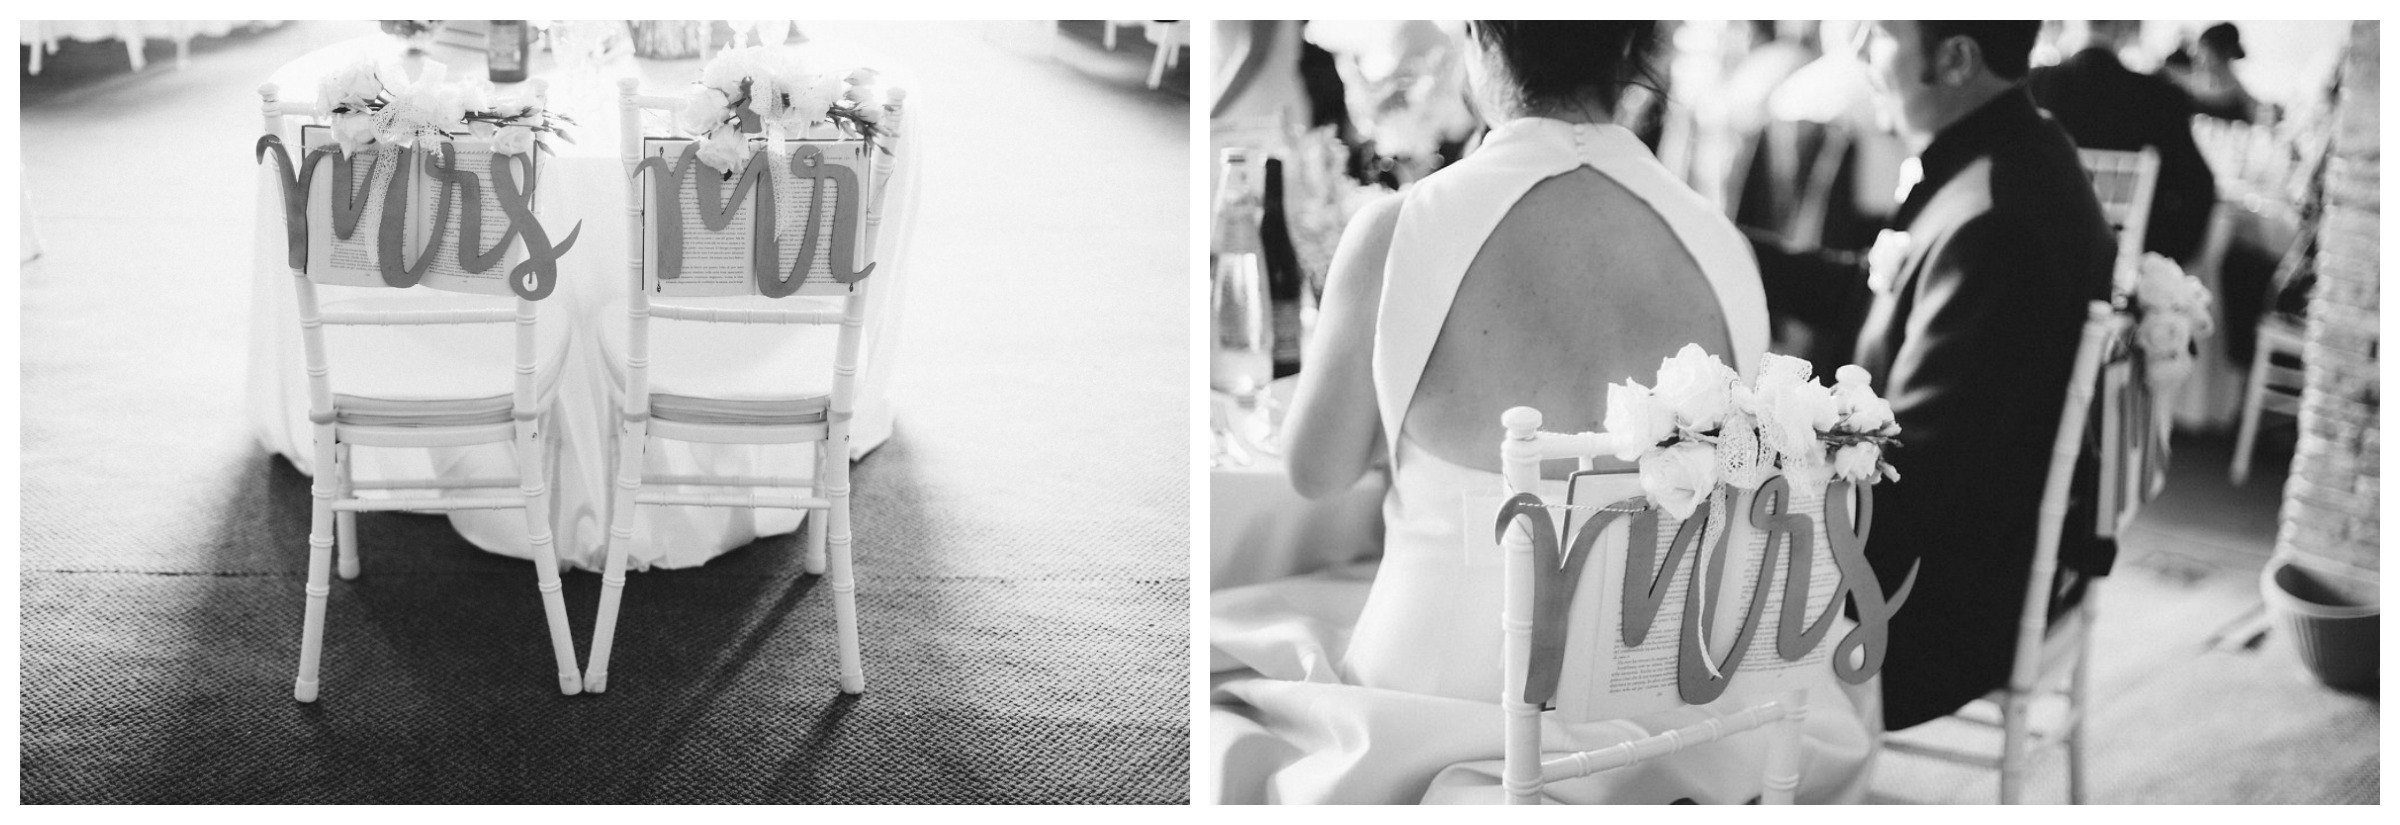 34-bride-and-groom-chairs-decor